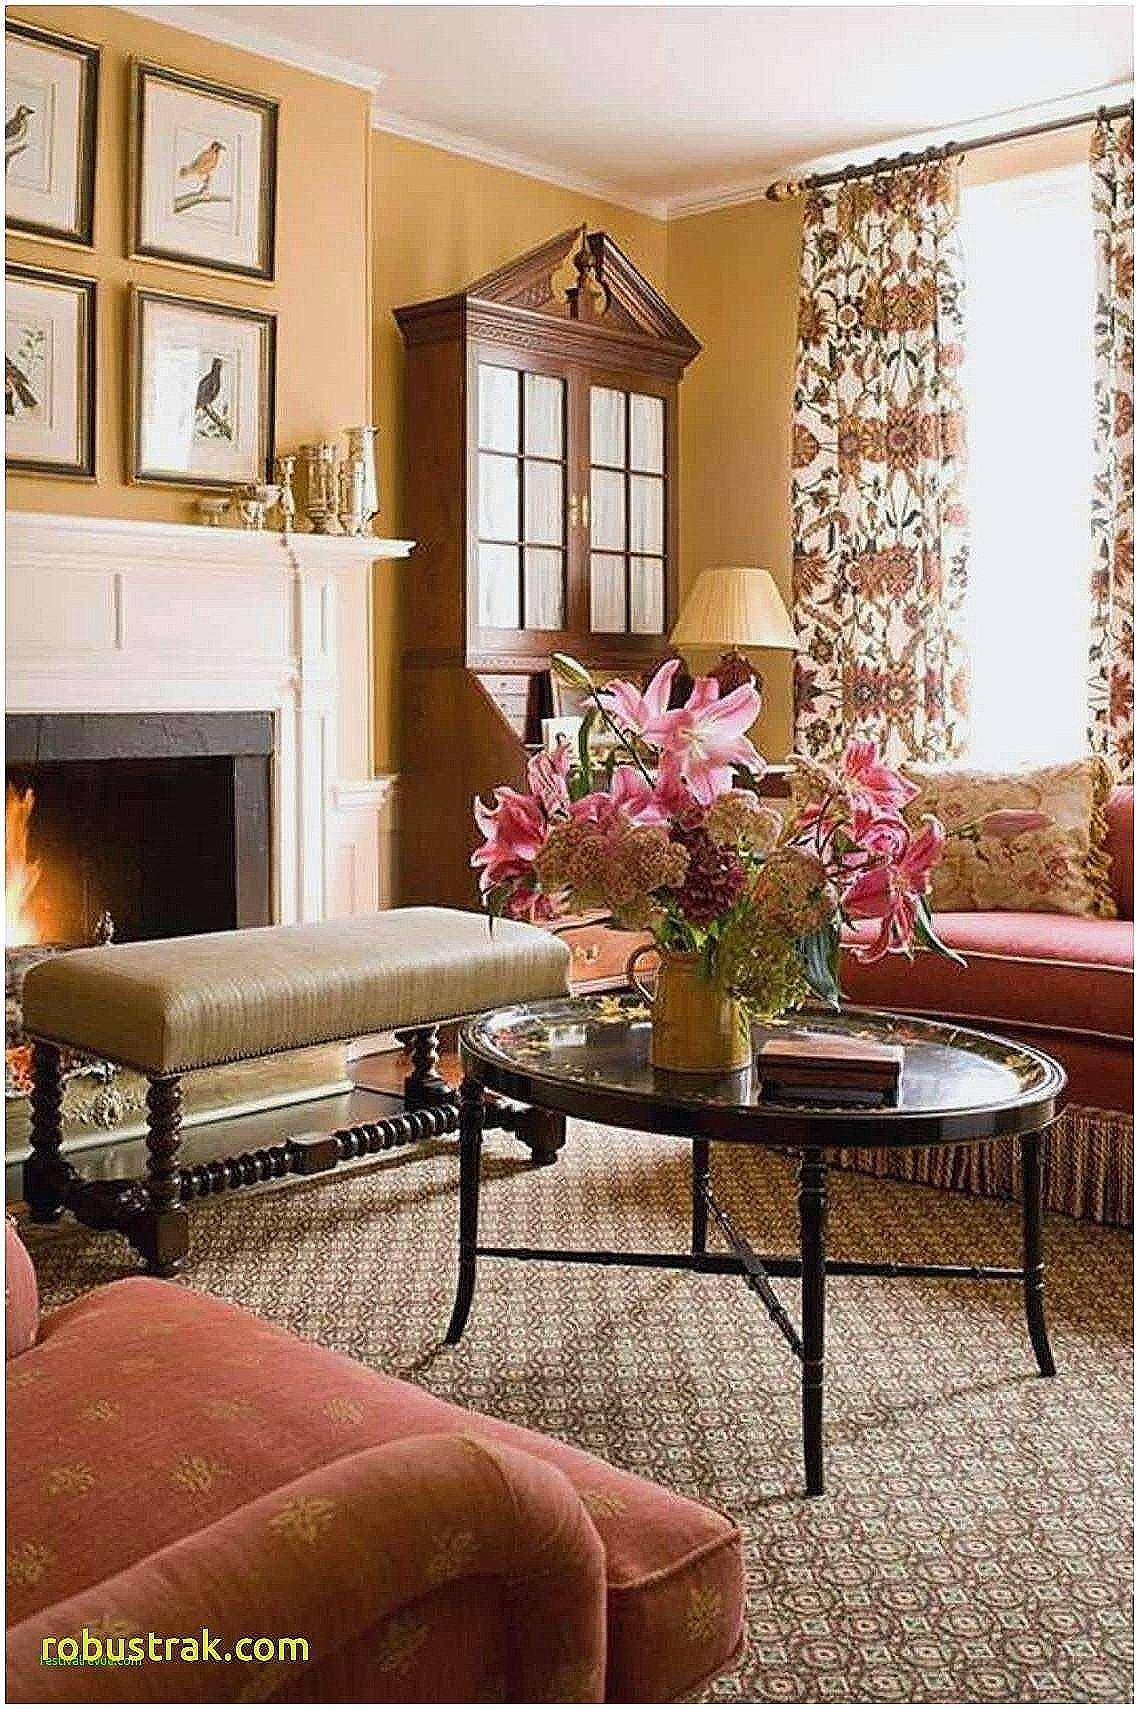 american house design living rooms decorating ideas elegant luxury living room decorating ideas for apartments of american house design living rooms decorating ideas